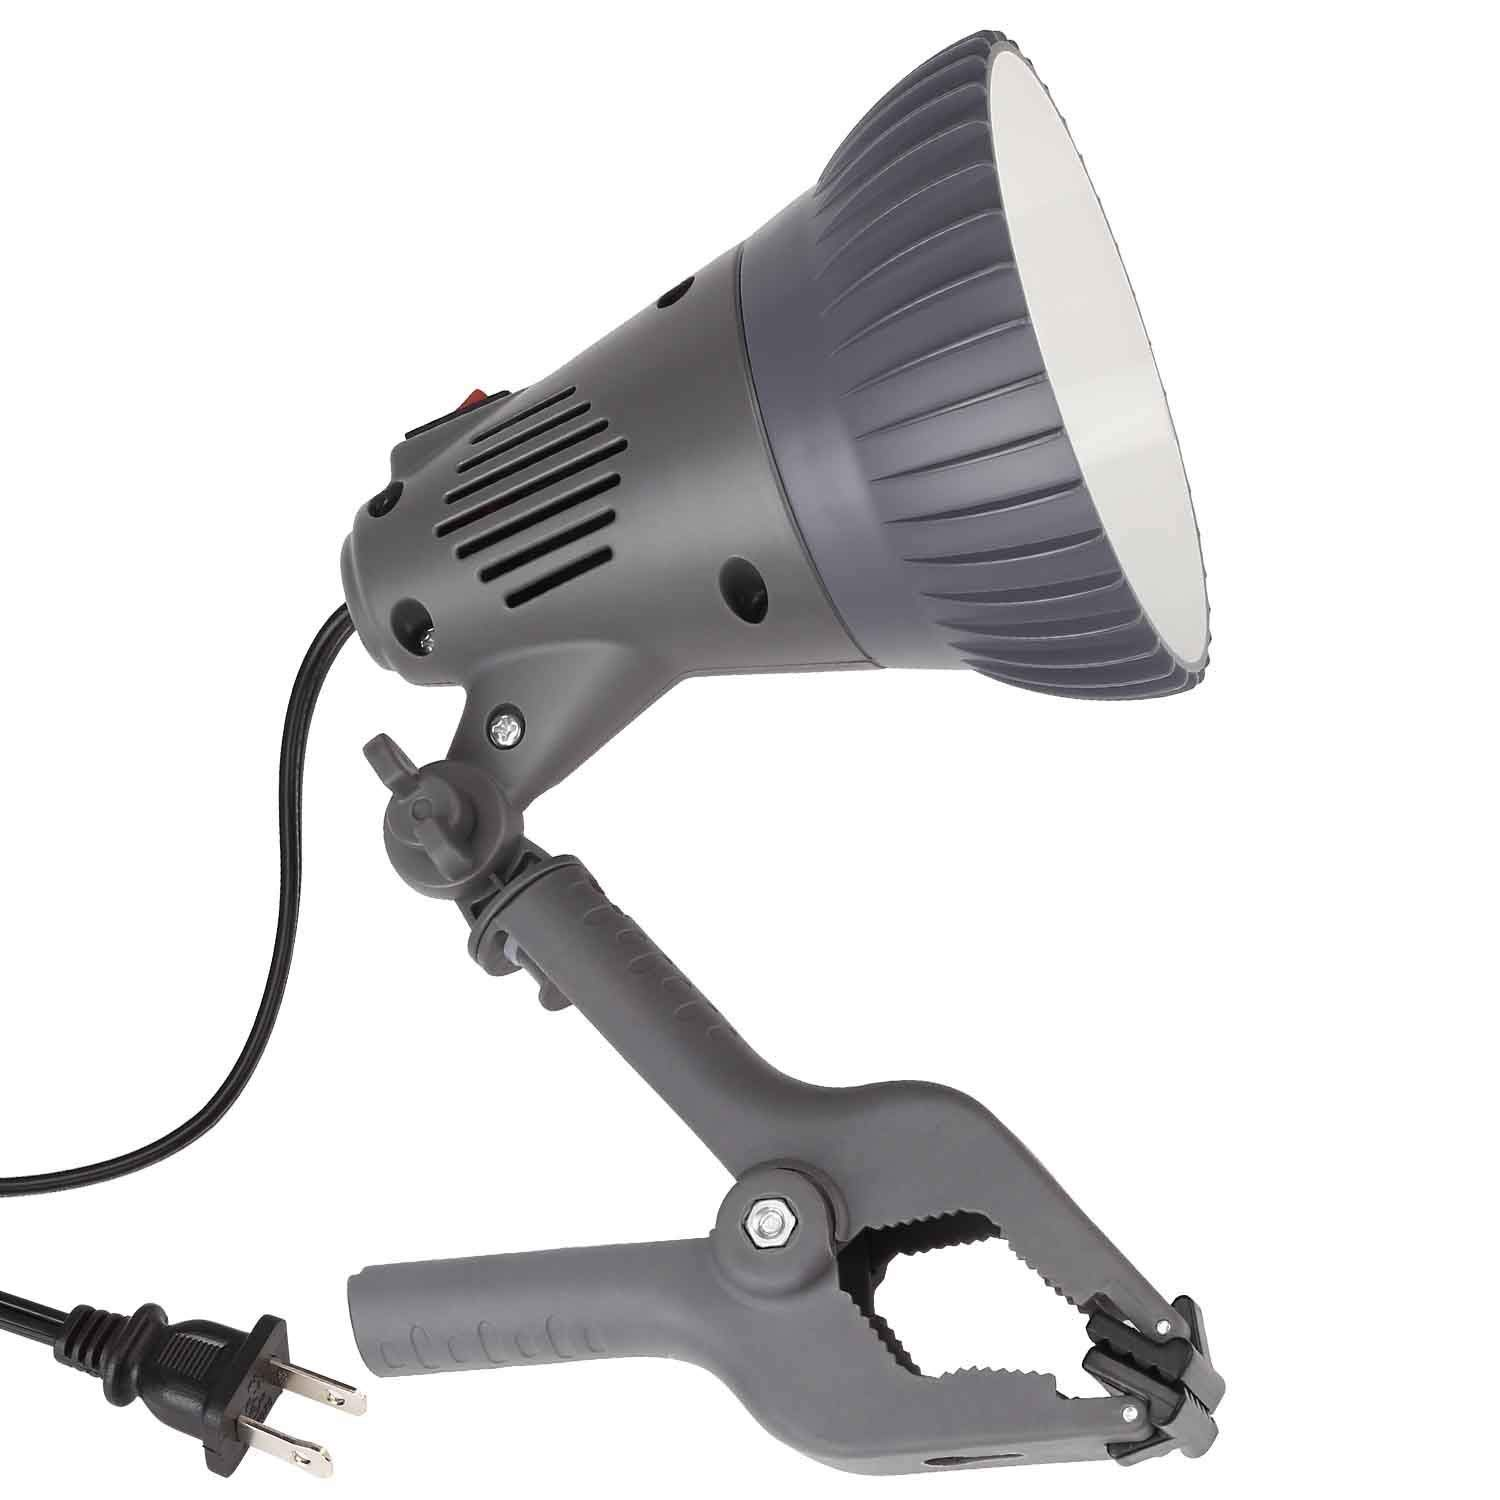 TORCHSTAR ETL-listed 7W LED Clamp Work Lamp, Integrated 360° Rotatable Head, Ultra Bright Work Bench Light, Desk Lamp with Clip, 4000K Cool White, 6ft Plug & Play Cord